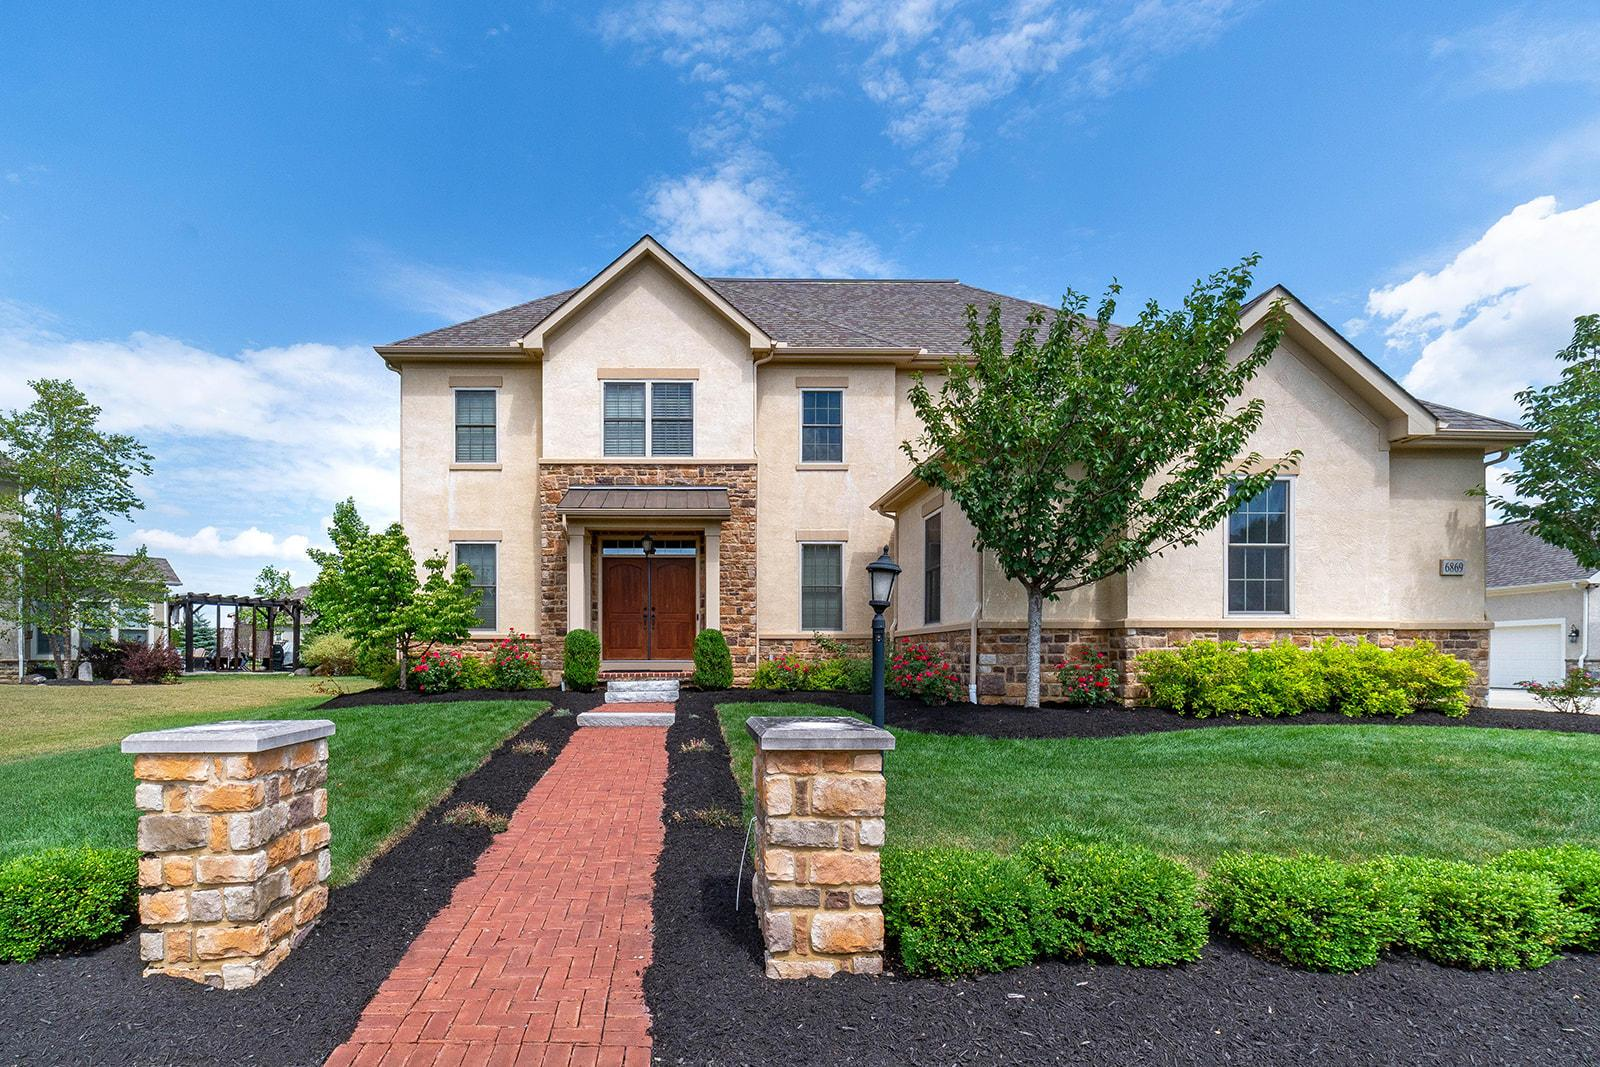 Photo of 6869 Enfield, Dublin, OH 43017